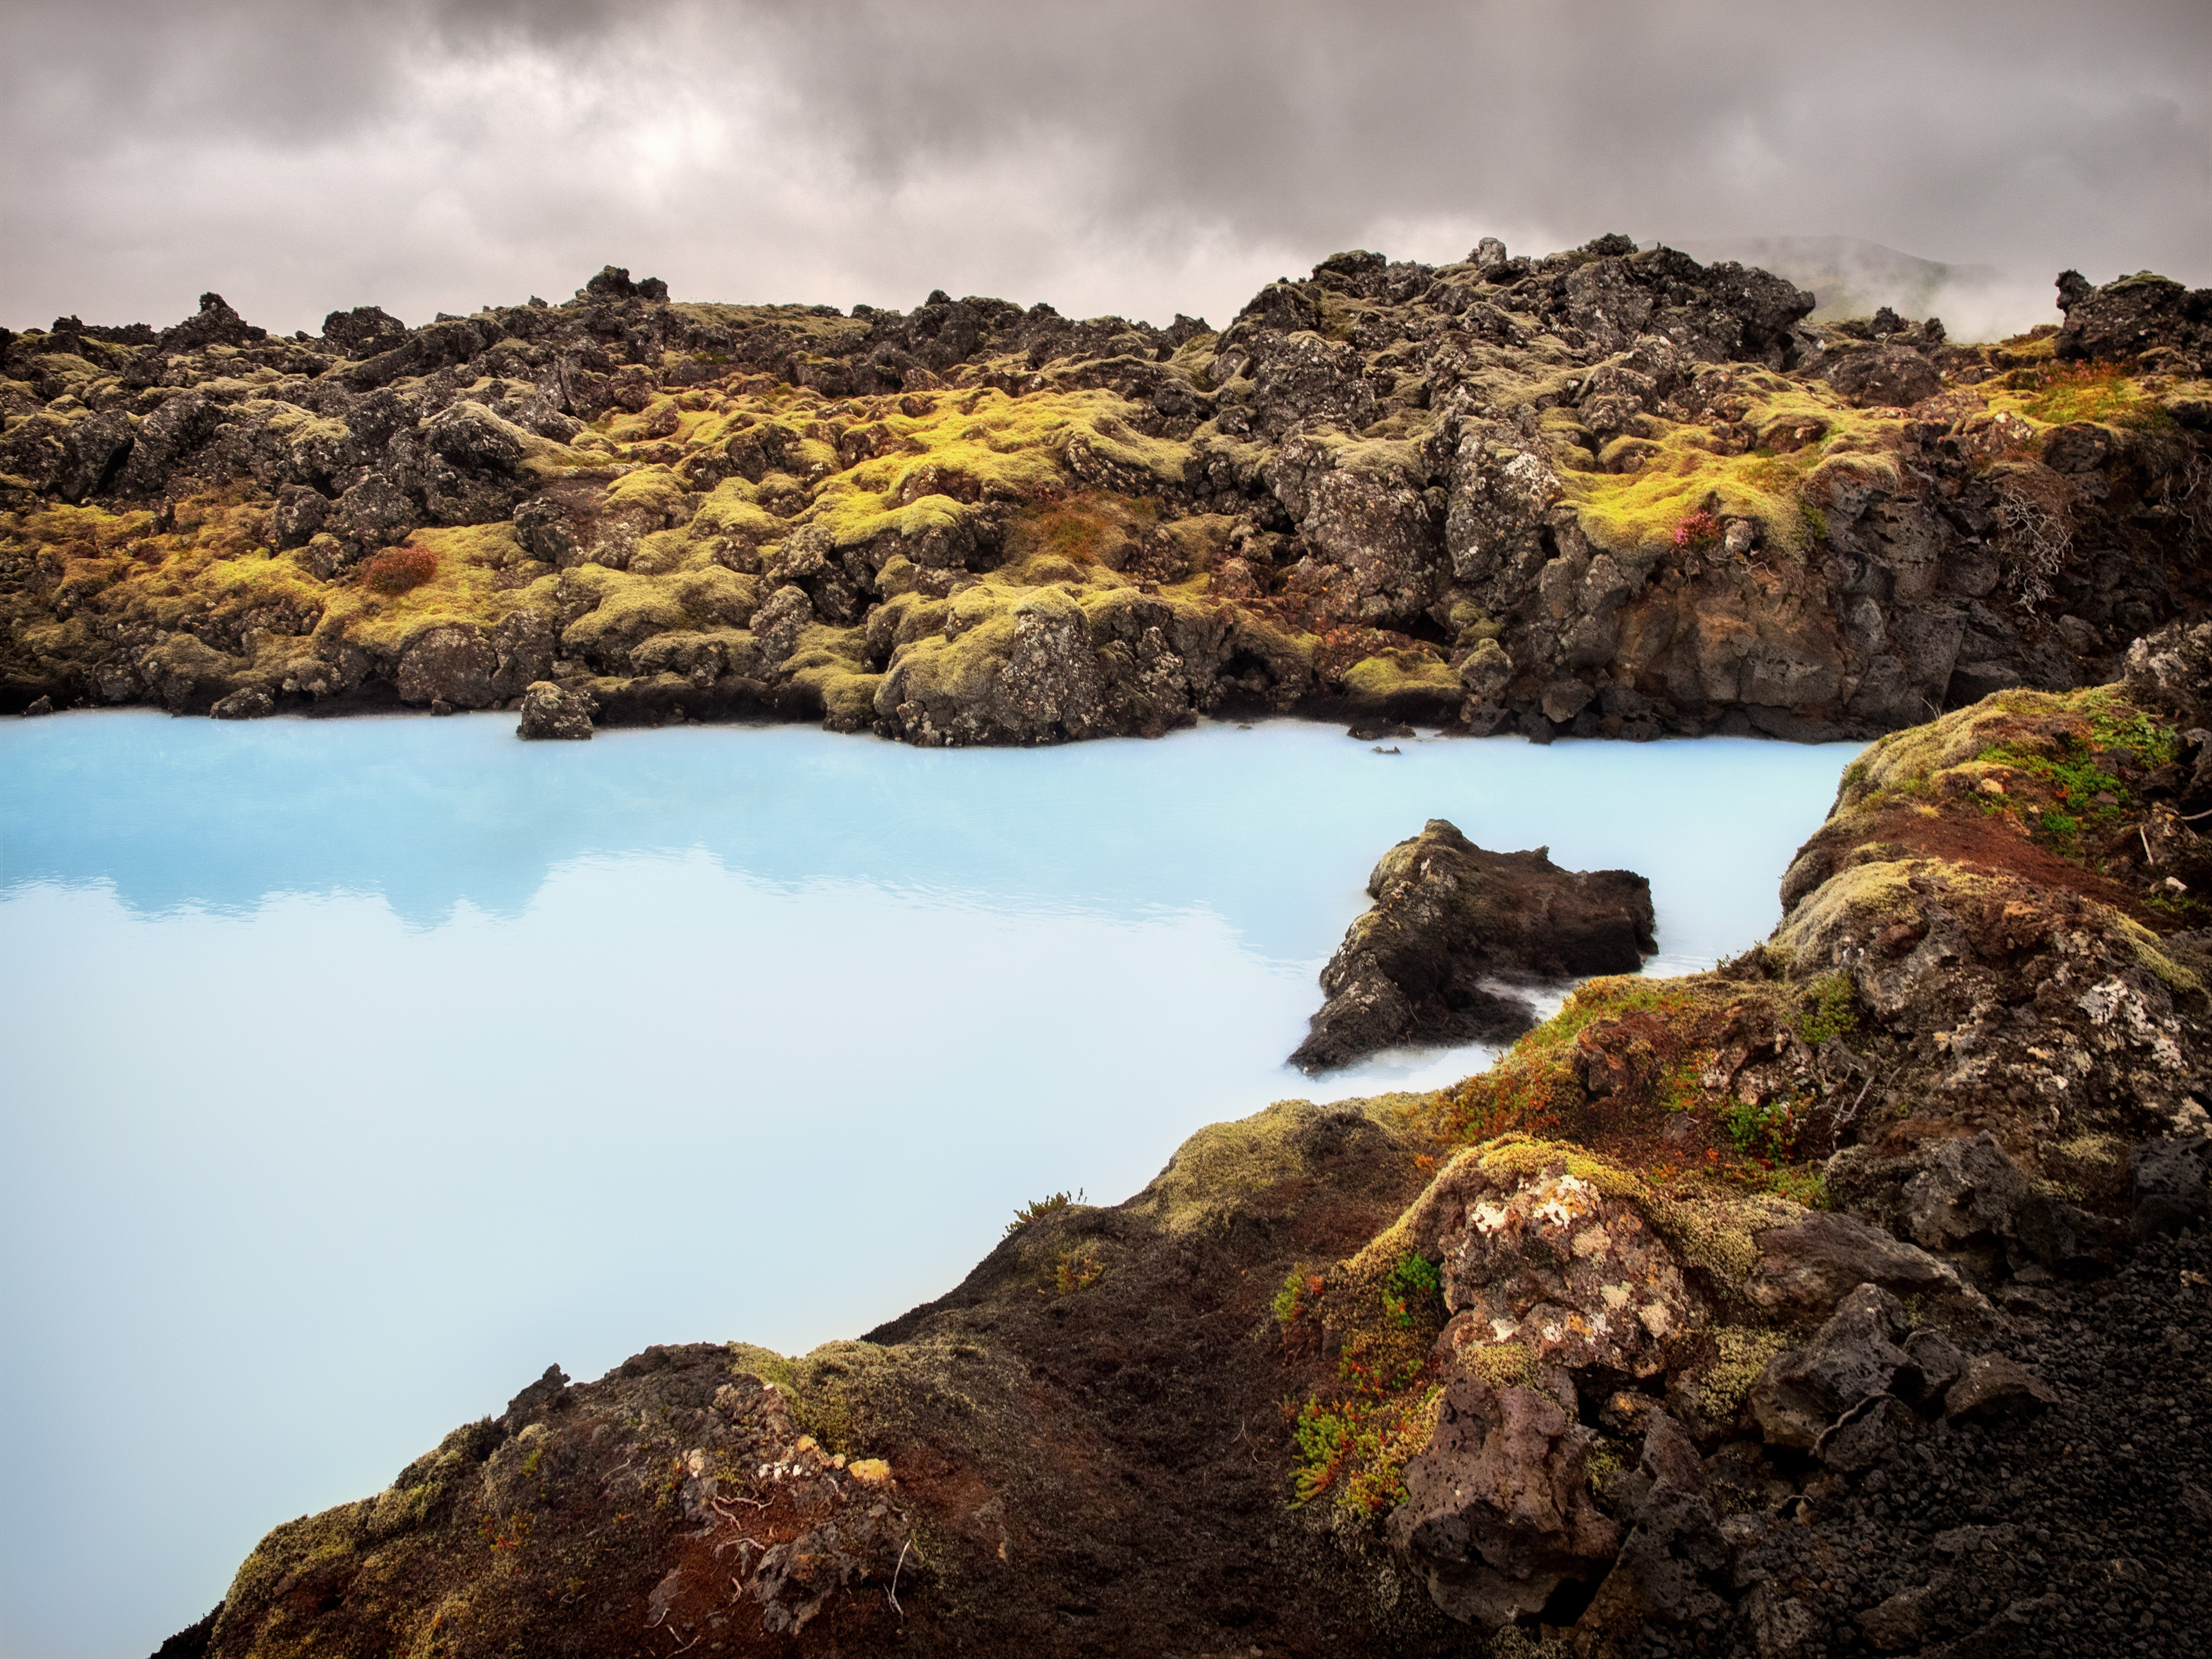 body of water between rocks under cloudy sky during daytime